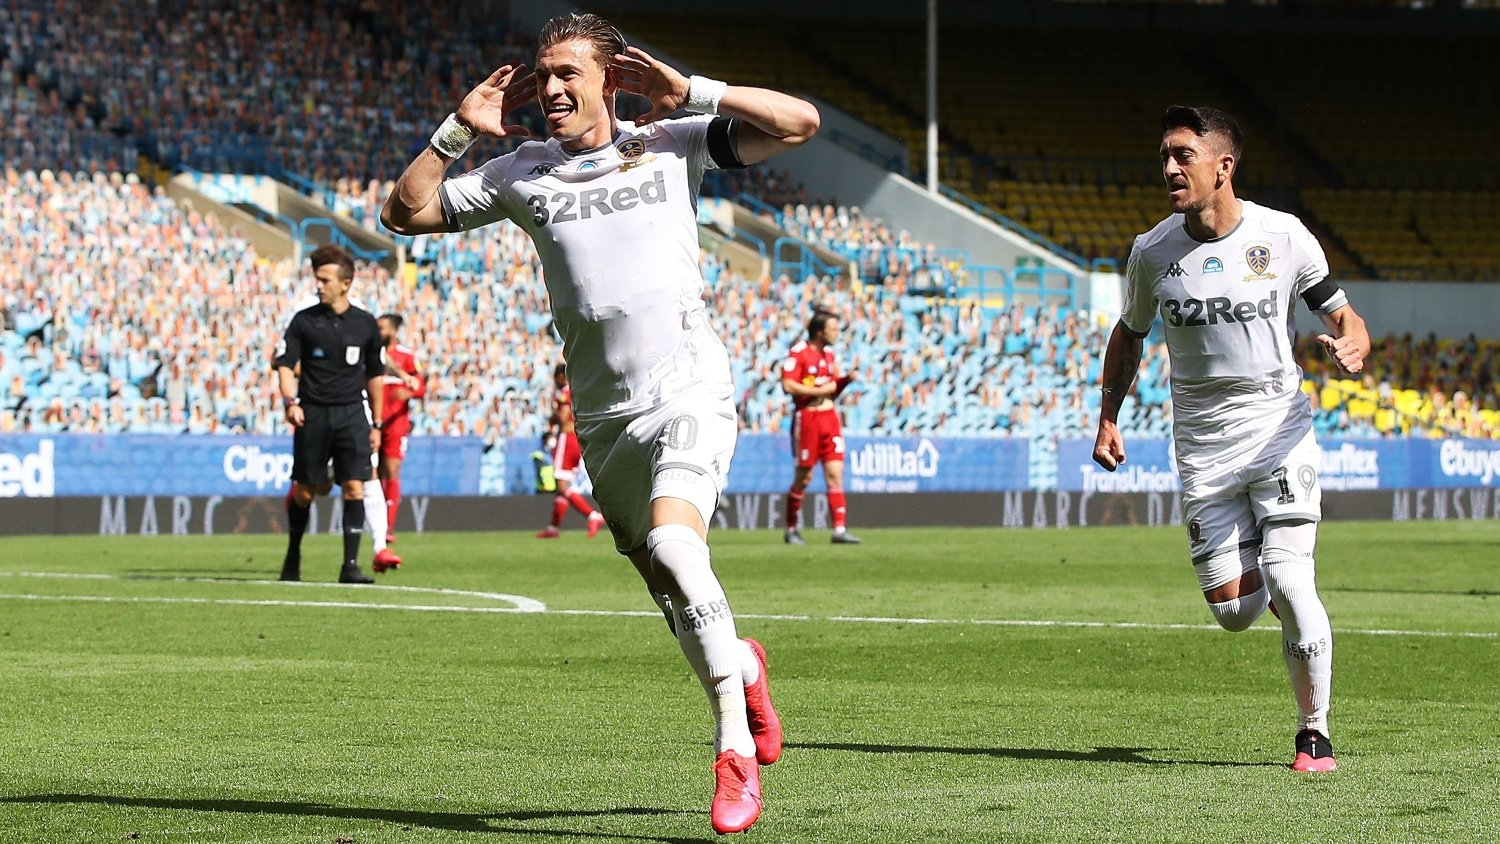 Leeds United's Ezgjan Alioski celebrates scoring his side's second goal of the game during the Sky Bet Championship match at Elland Road, Leeds.